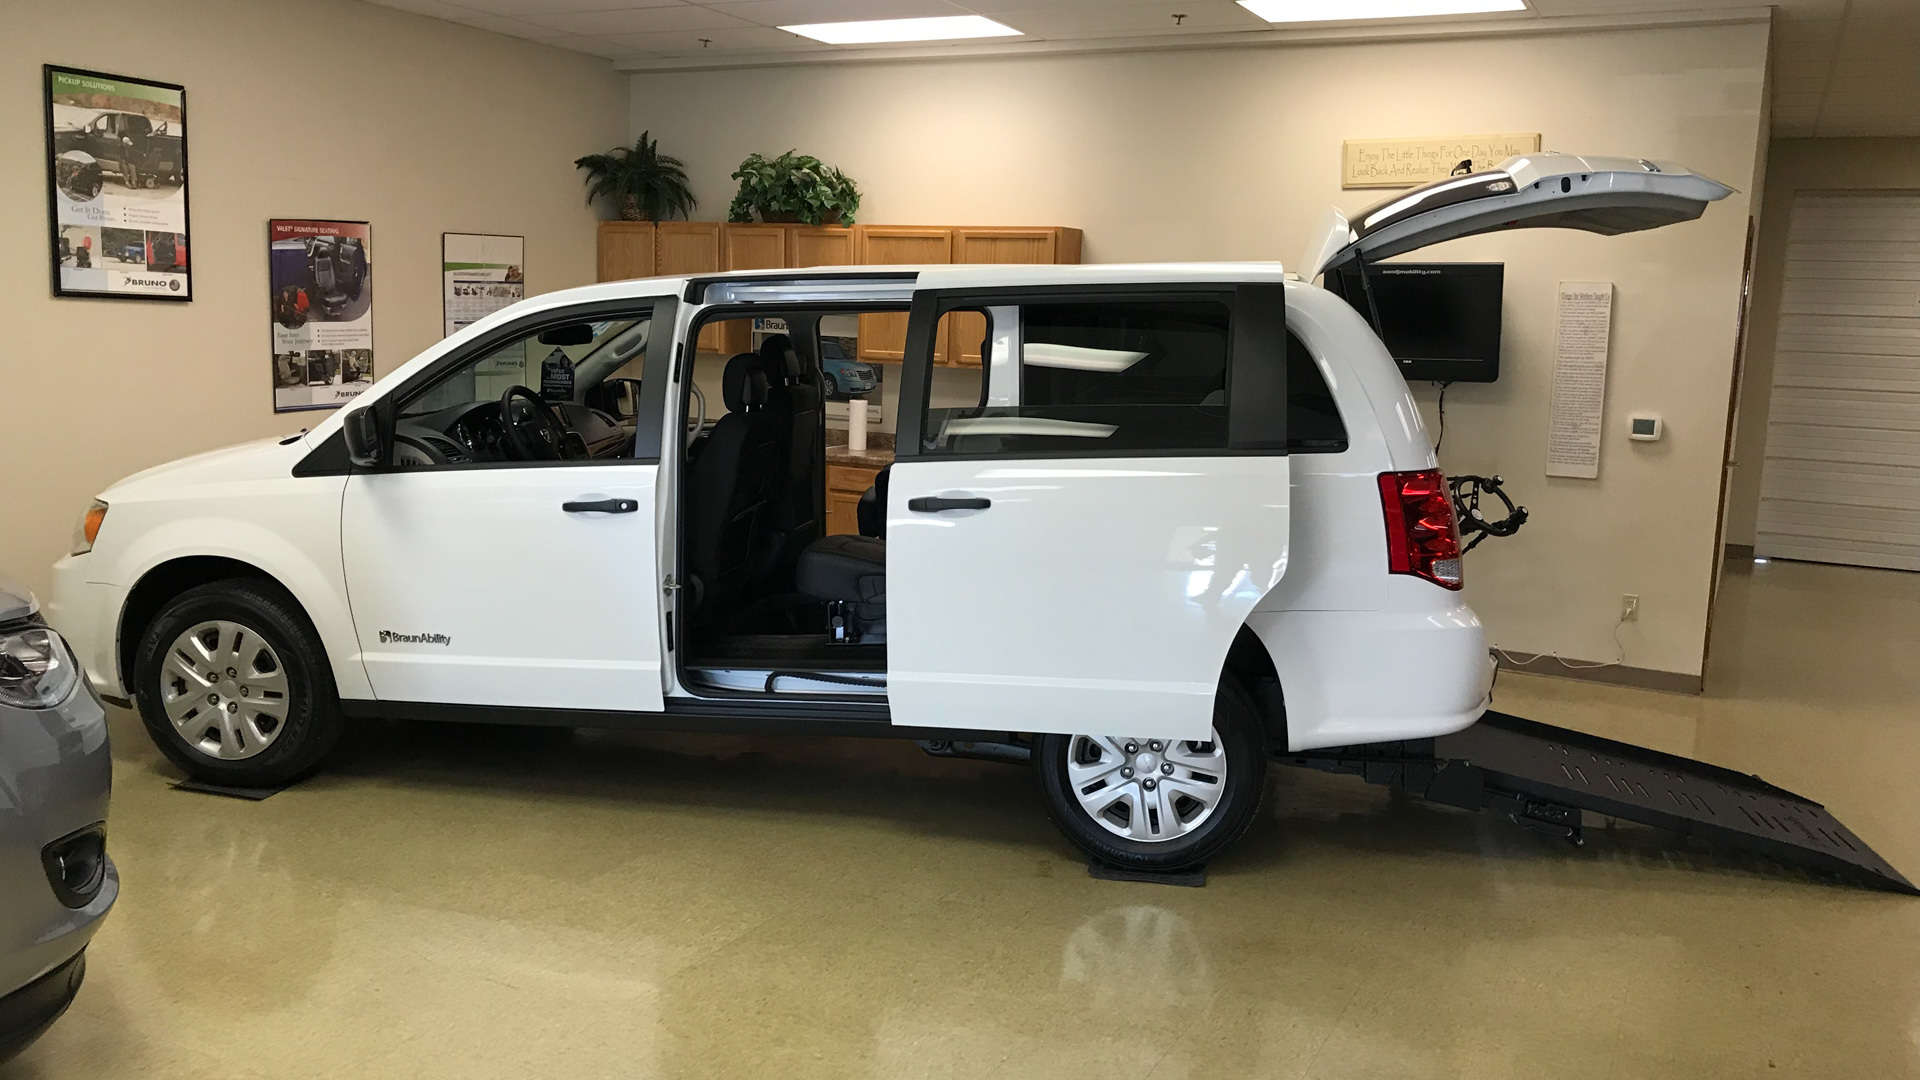 2019 Dodge Grand Caravan | Conversion: Commercial Vans Dodge ADA Rear Entry